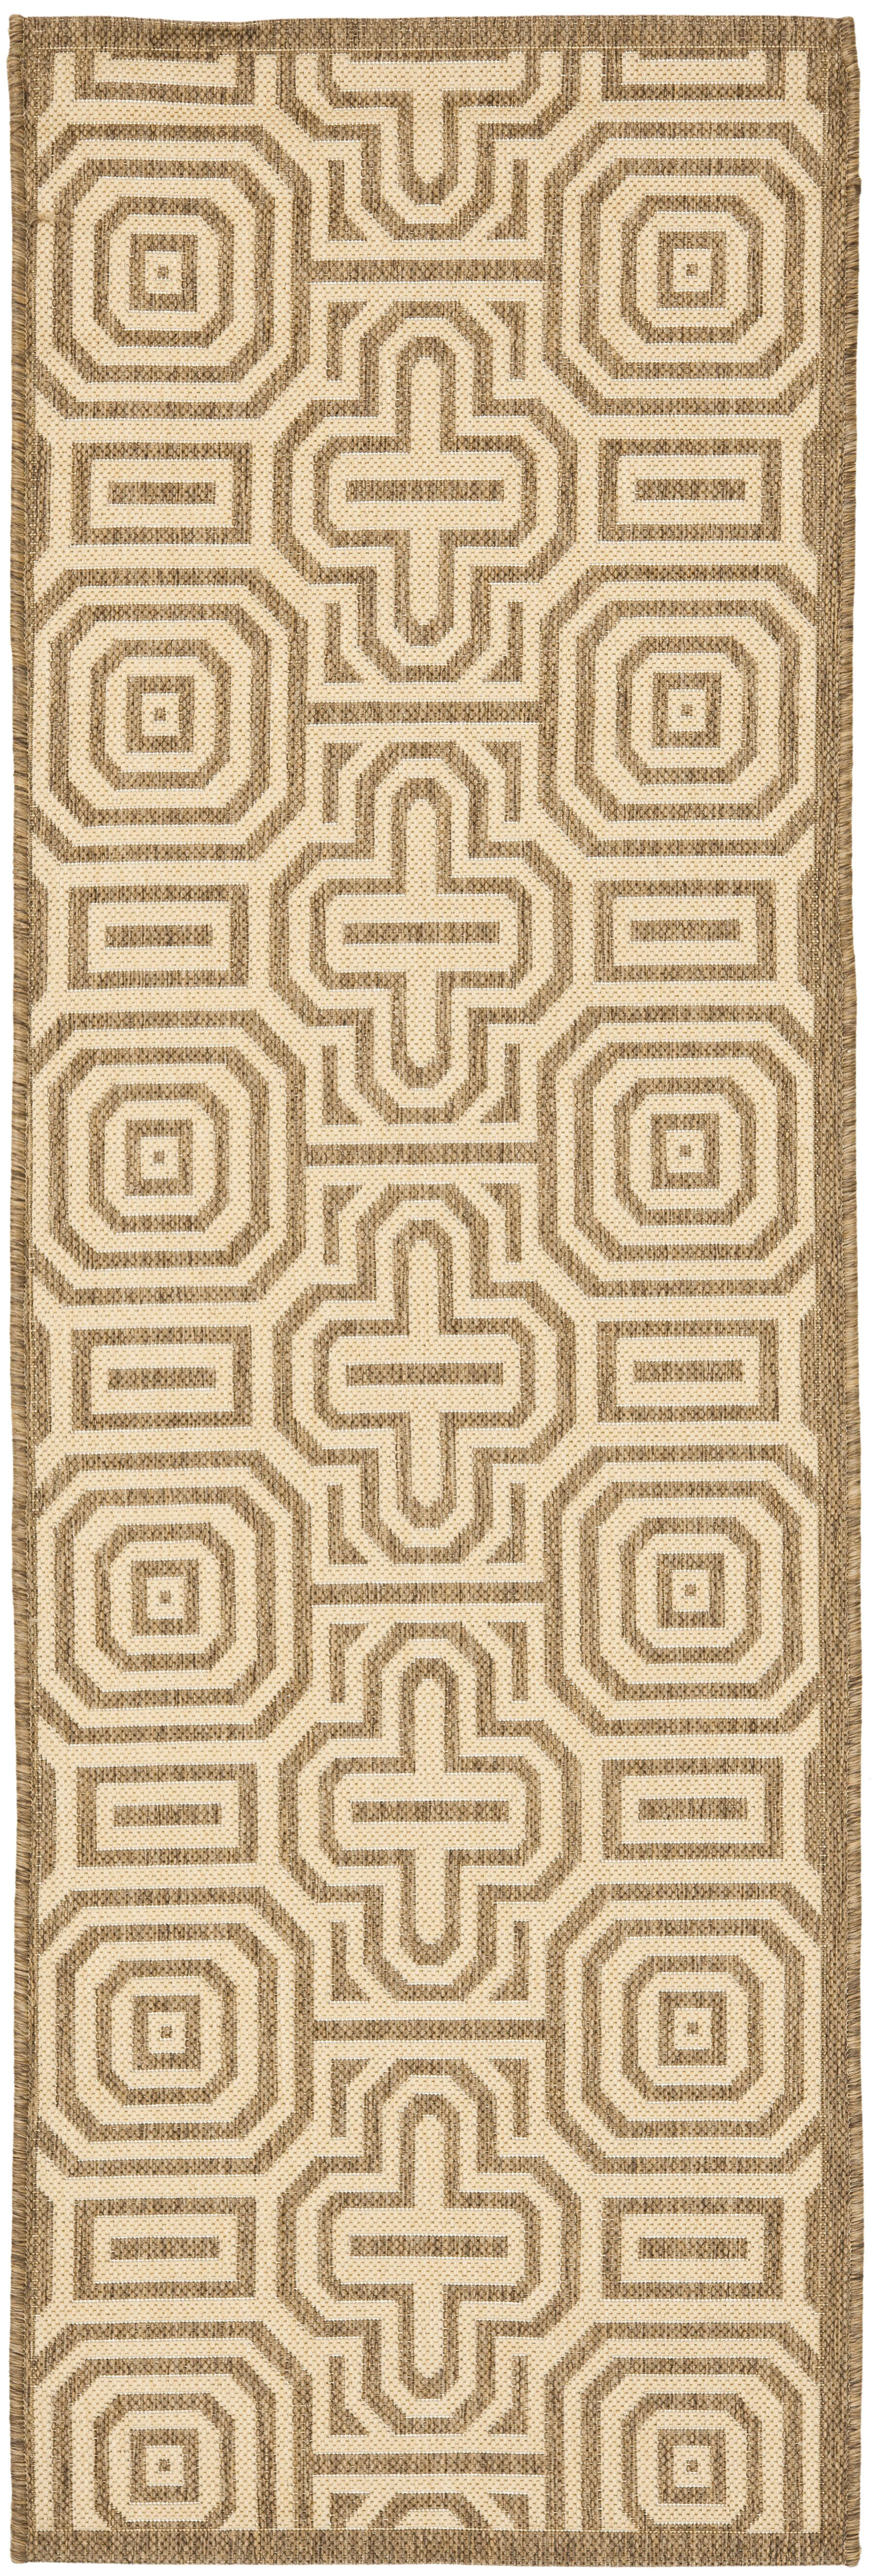 Jefferson Place Natural/Brown Indoor/Outdoor Area Rug Rug Size: Runner 2'4